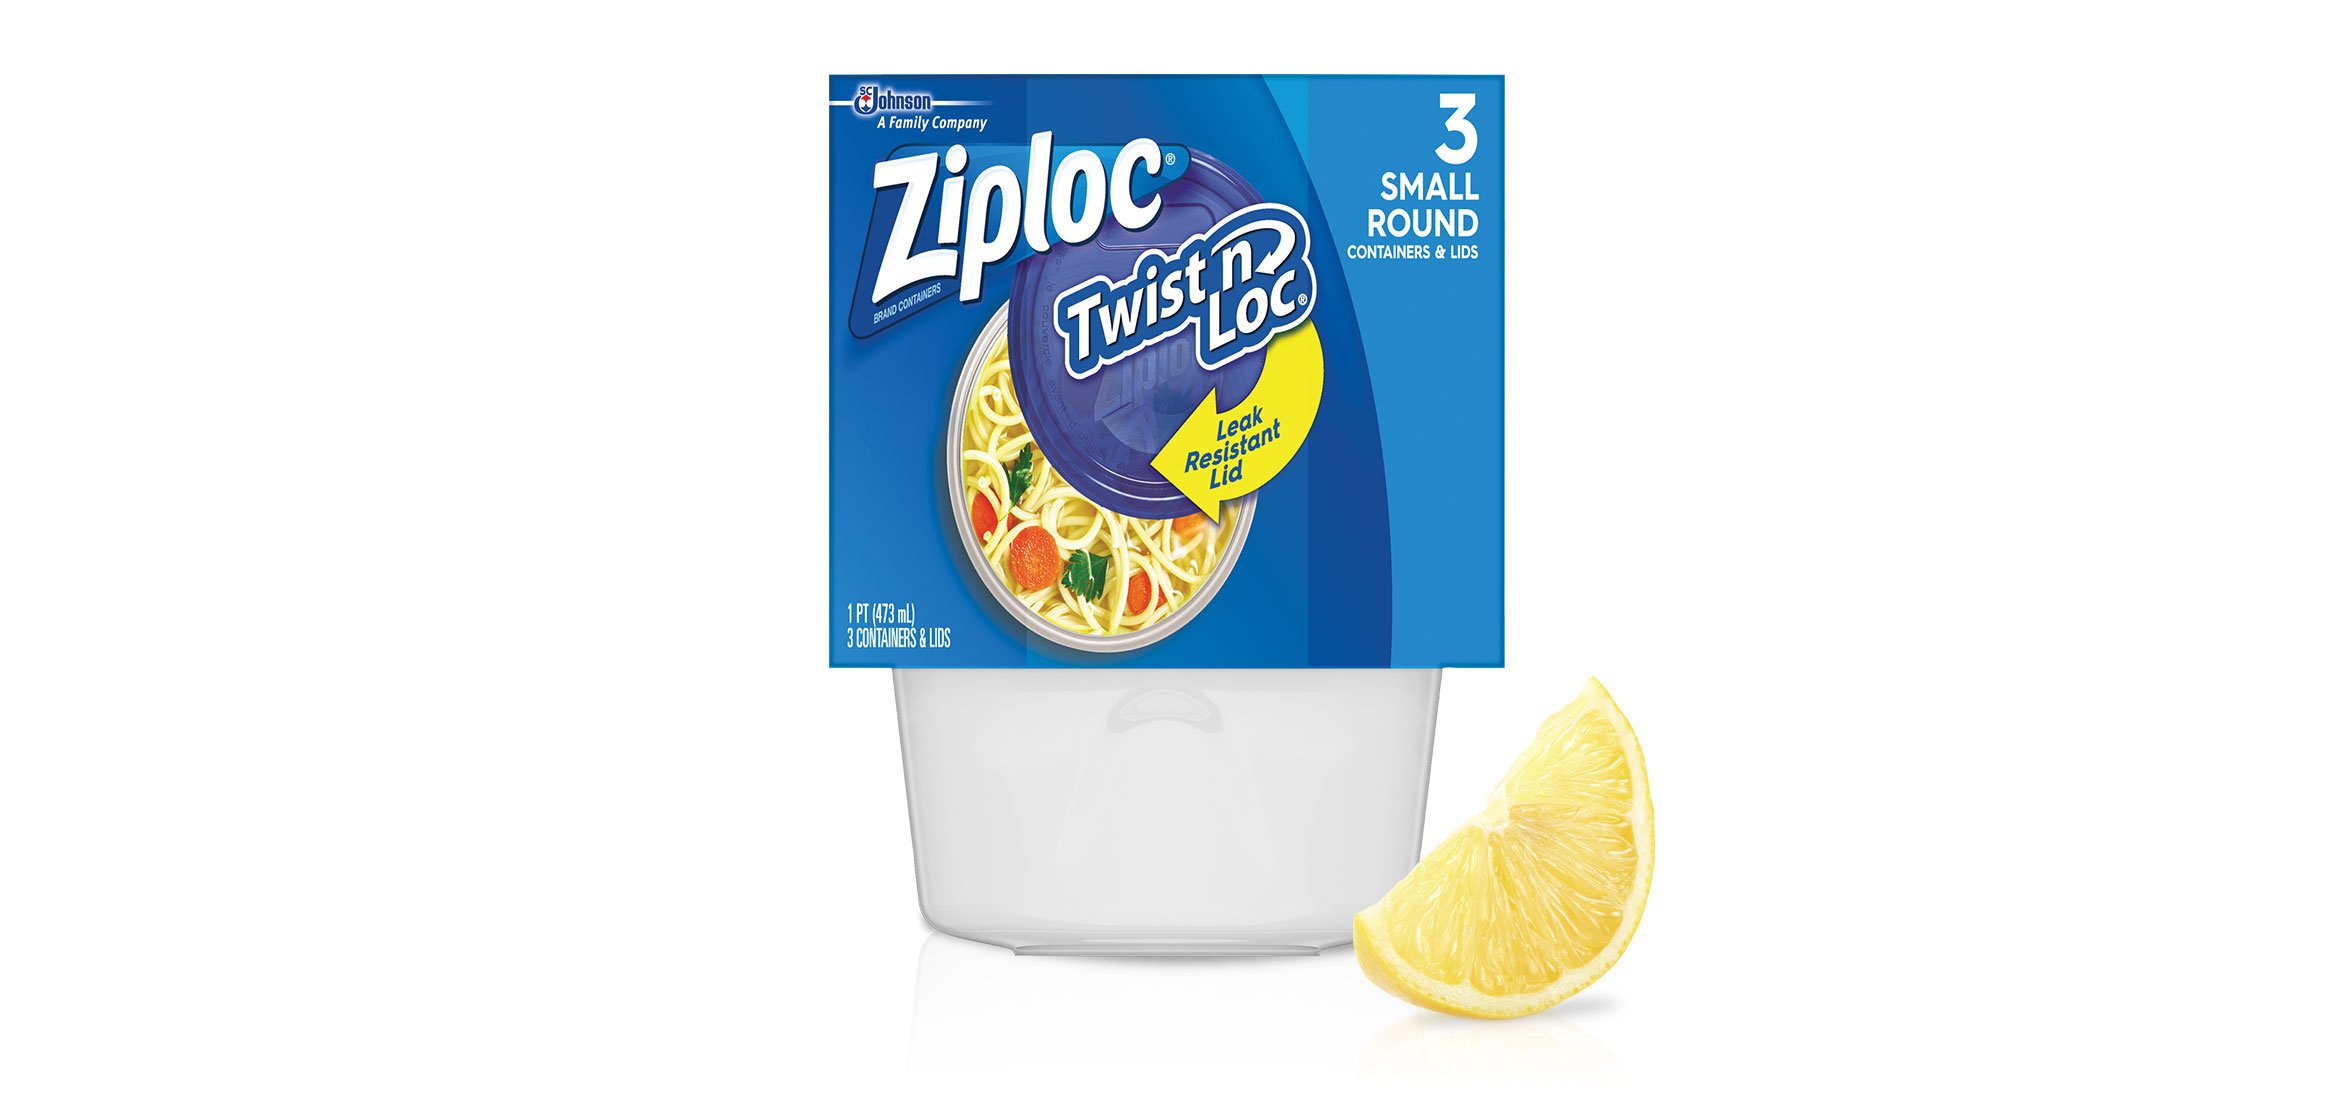 Lots Of Ziploc® Brand Products For All Your Storage & Organization Needs on I Heart Publix 4